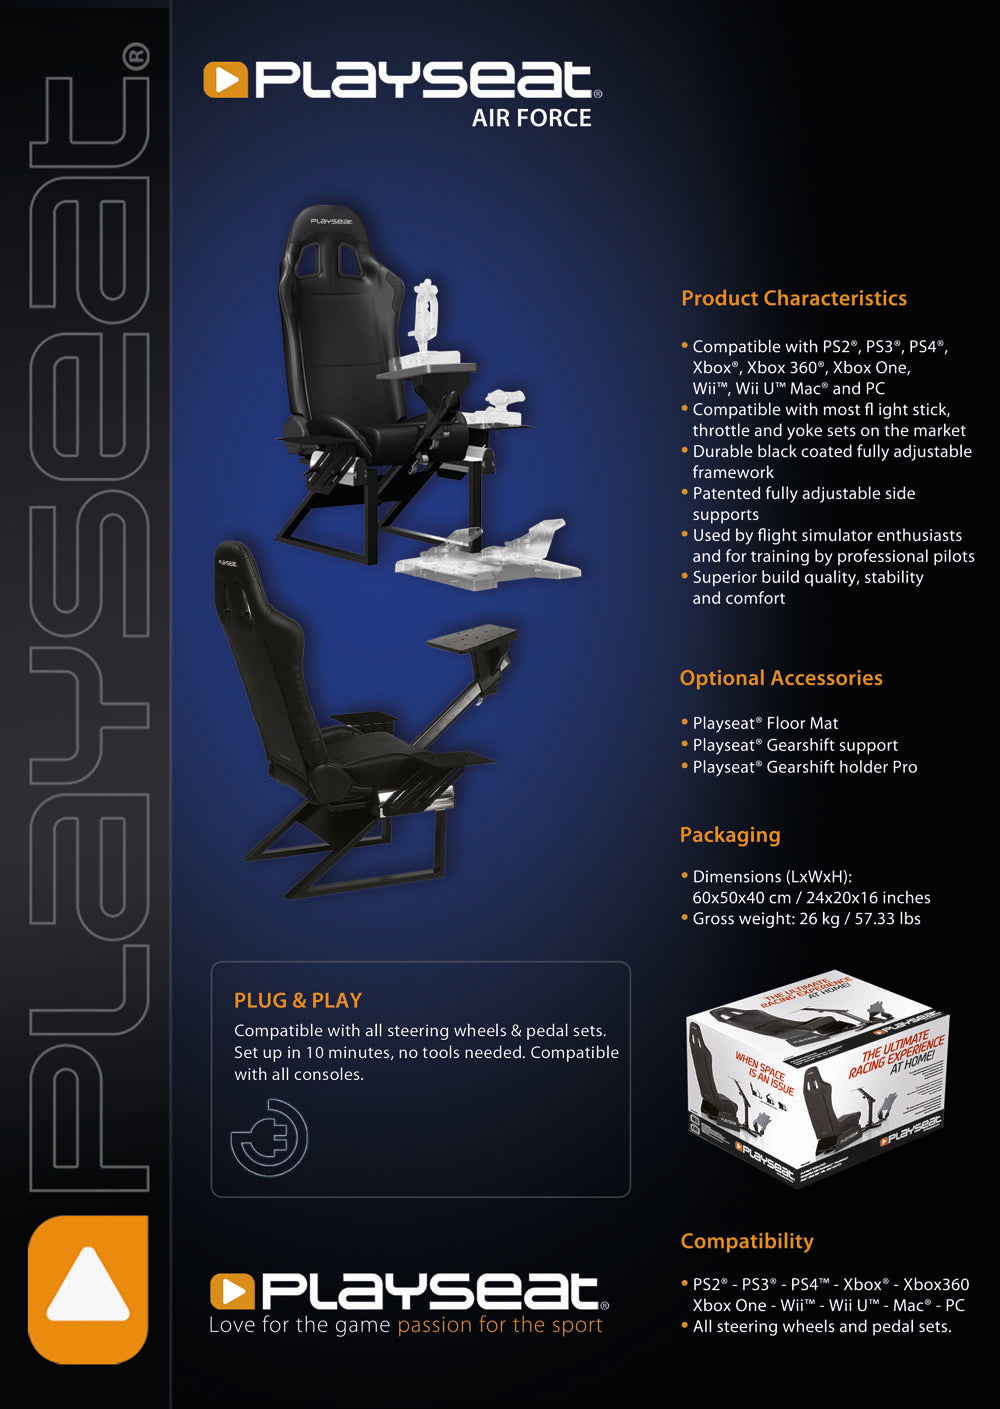 Playseat air force flight simulator chair champs chairs the playseat air force seat takes gamers to new levsls featuring a dynamic fighter plane cockpit style design this aggressive yet sophisticated nvjuhfo Images